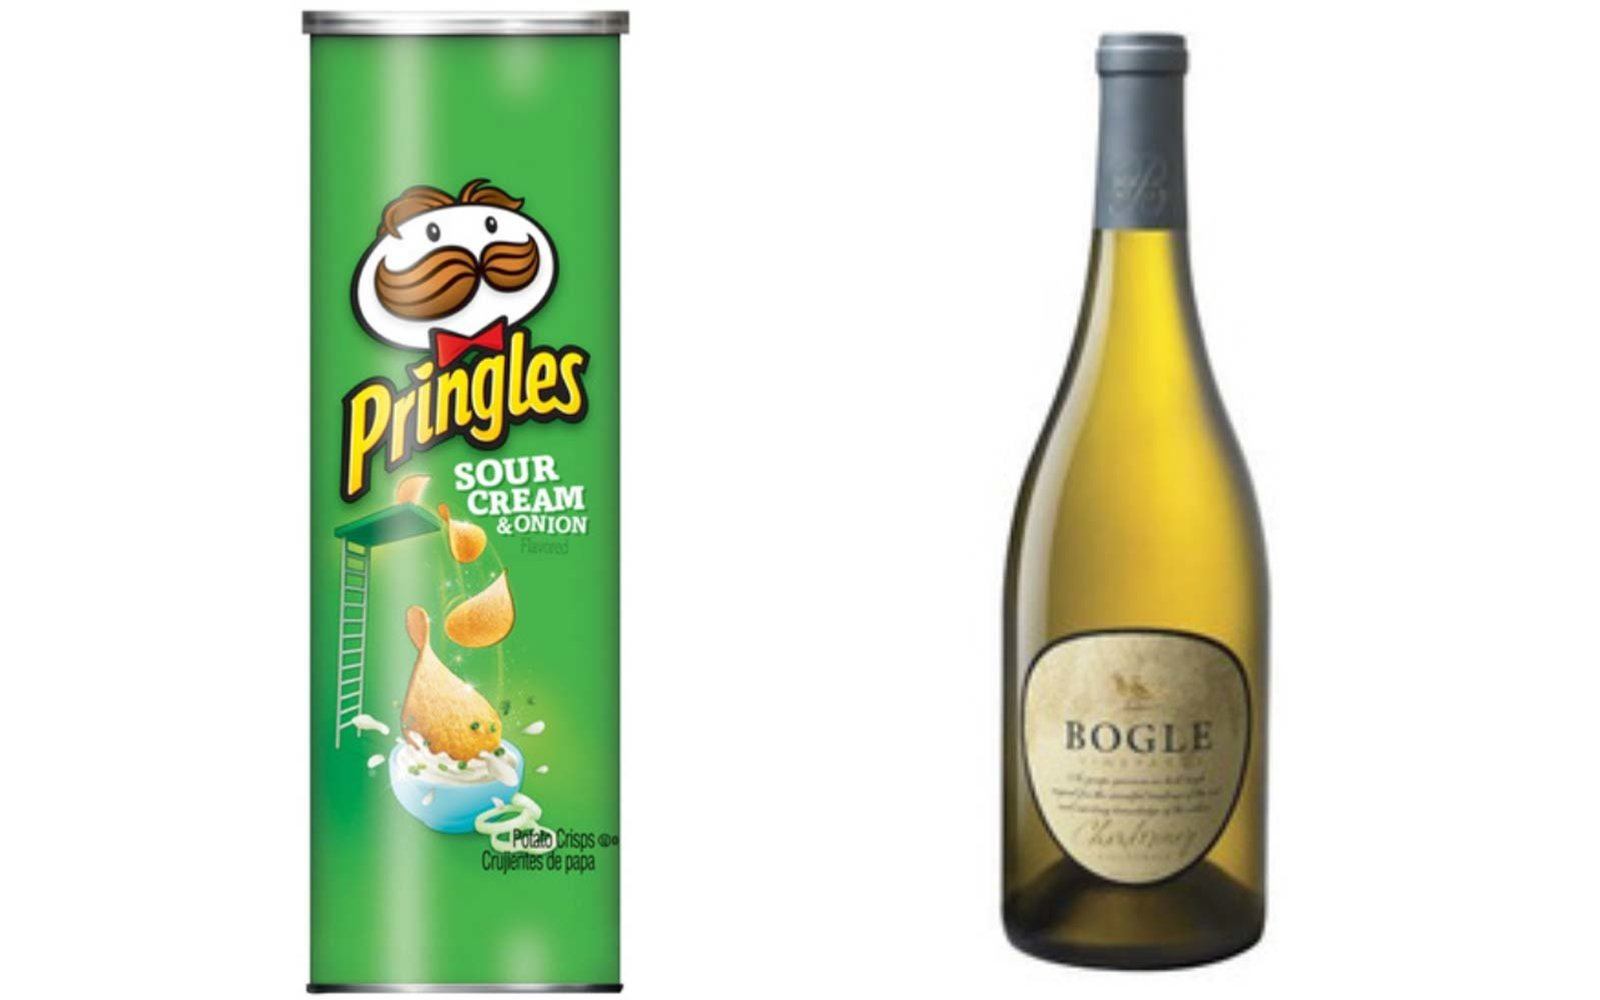 Sour Cream & Onion Pringles with Chardonnay